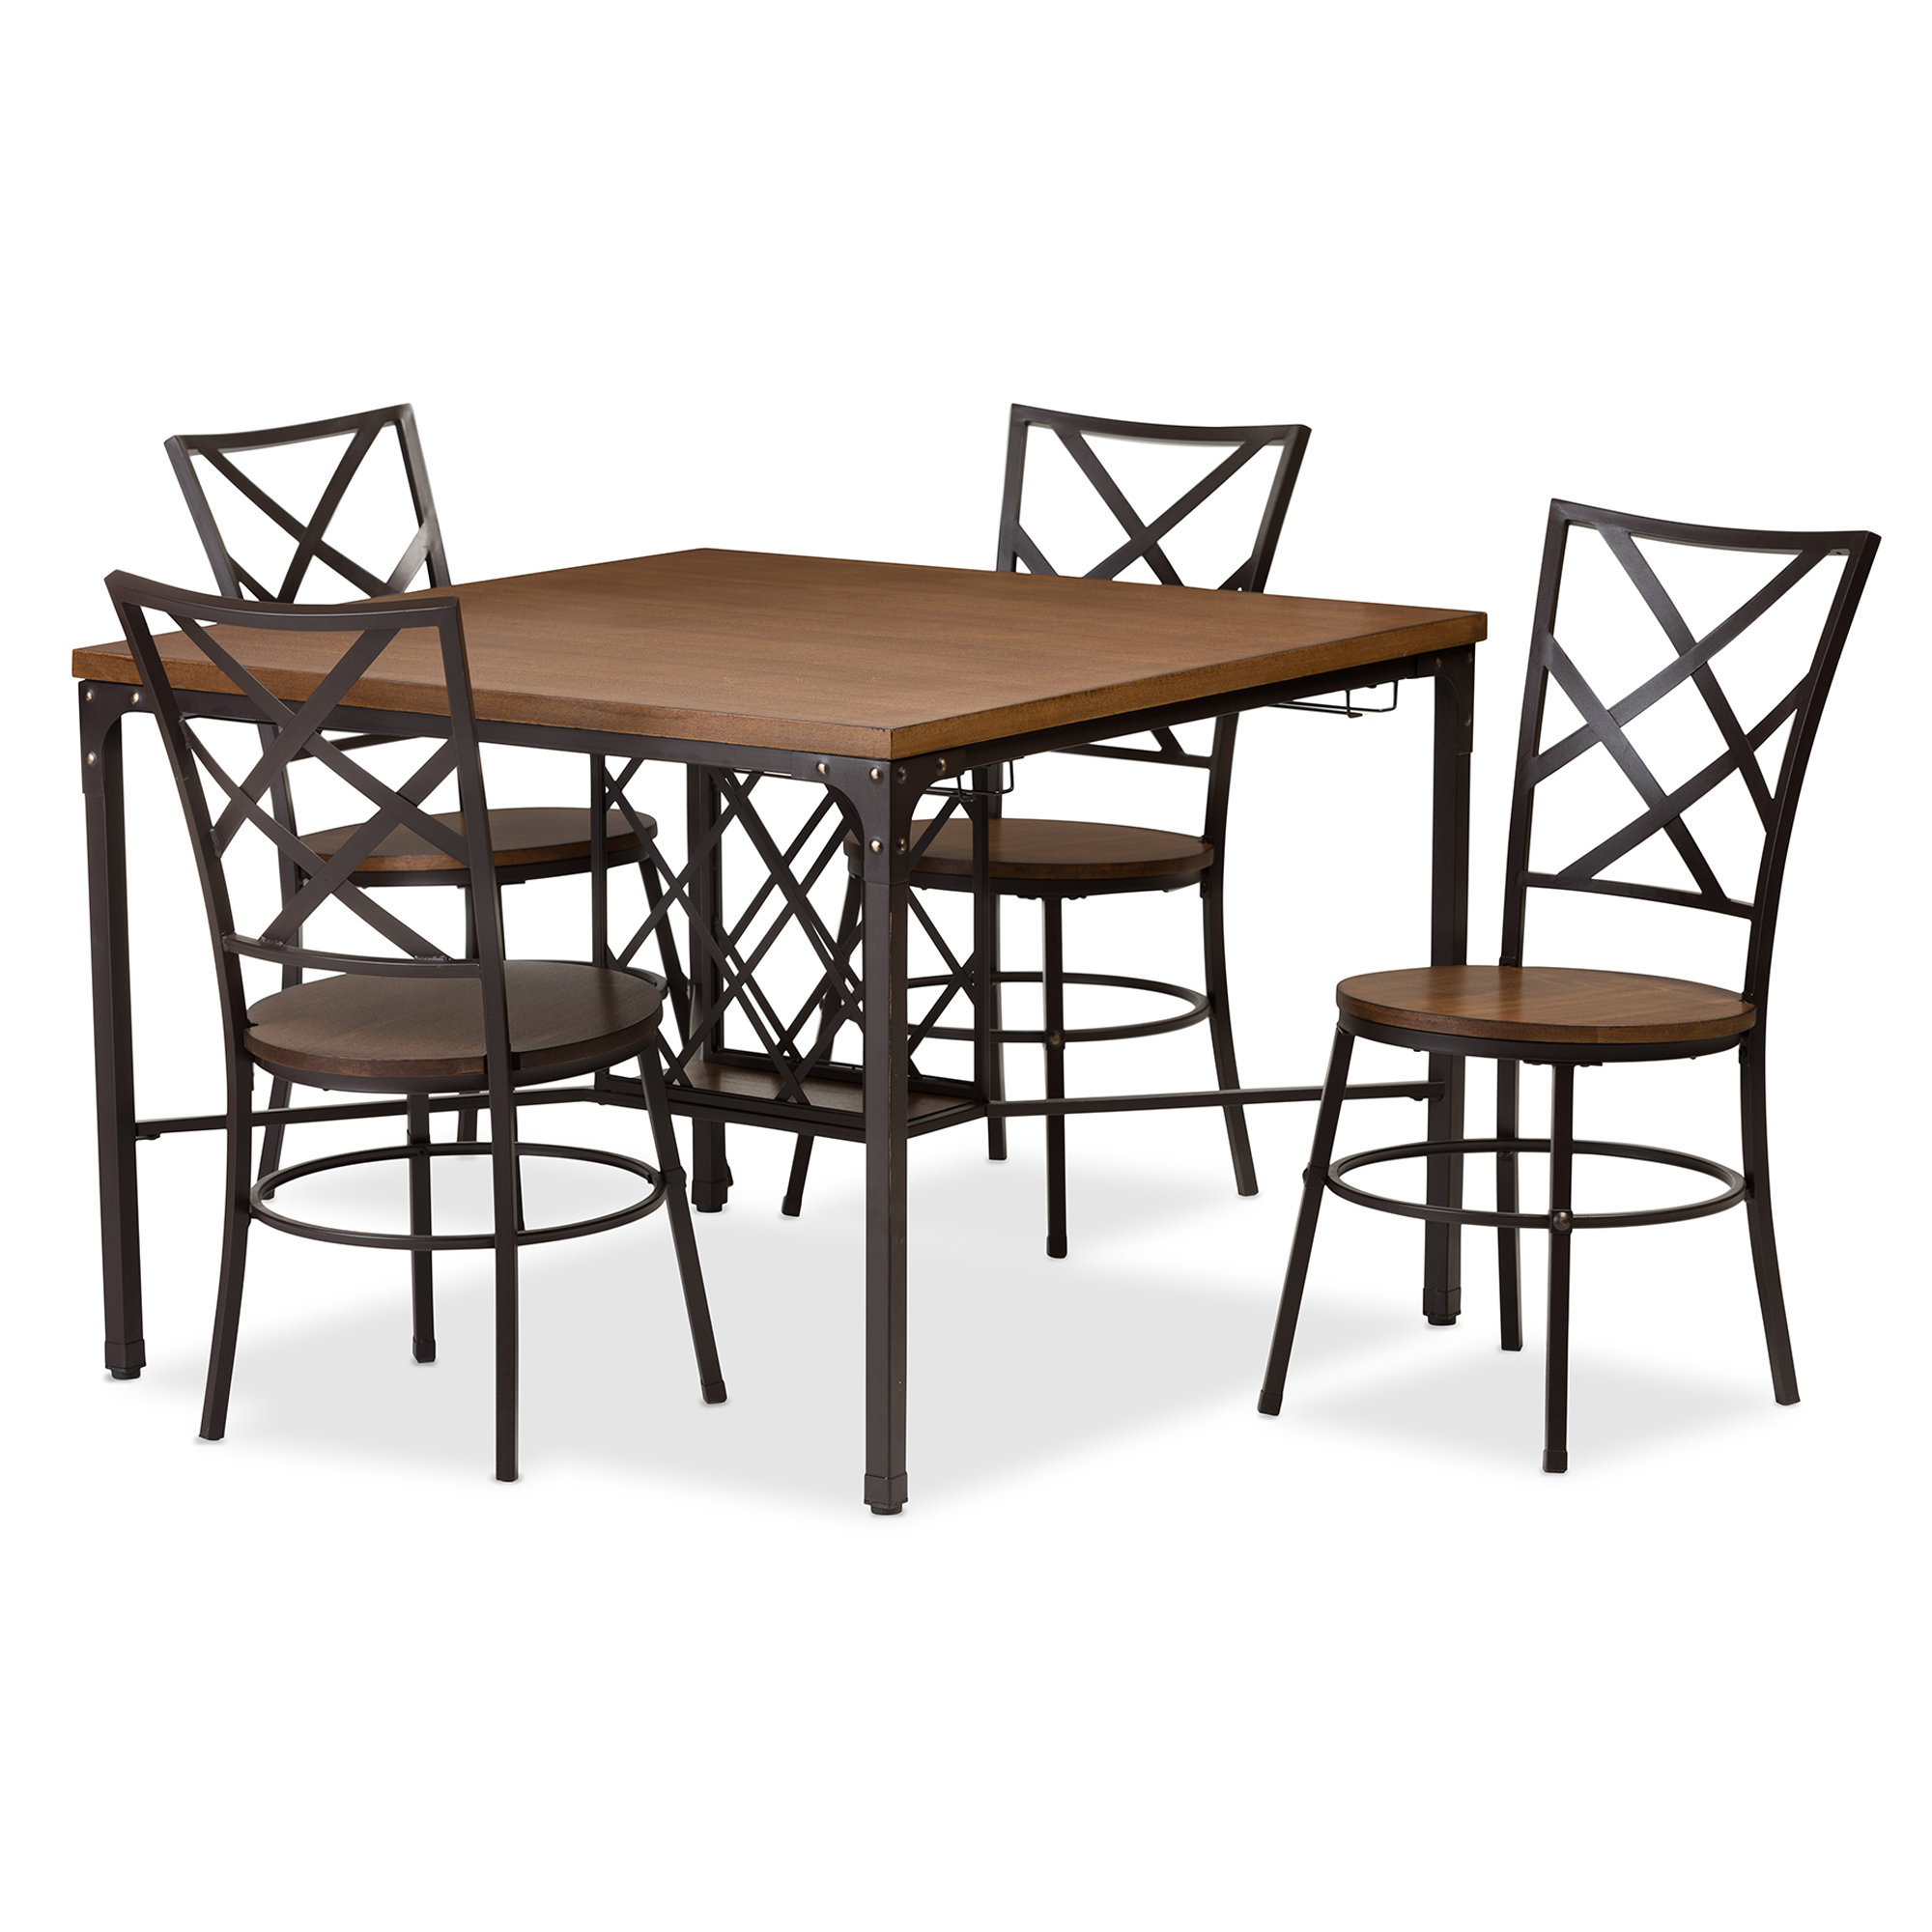 Wayfair Intended For Ganya 5 Piece Dining Sets (View 19 of 25)